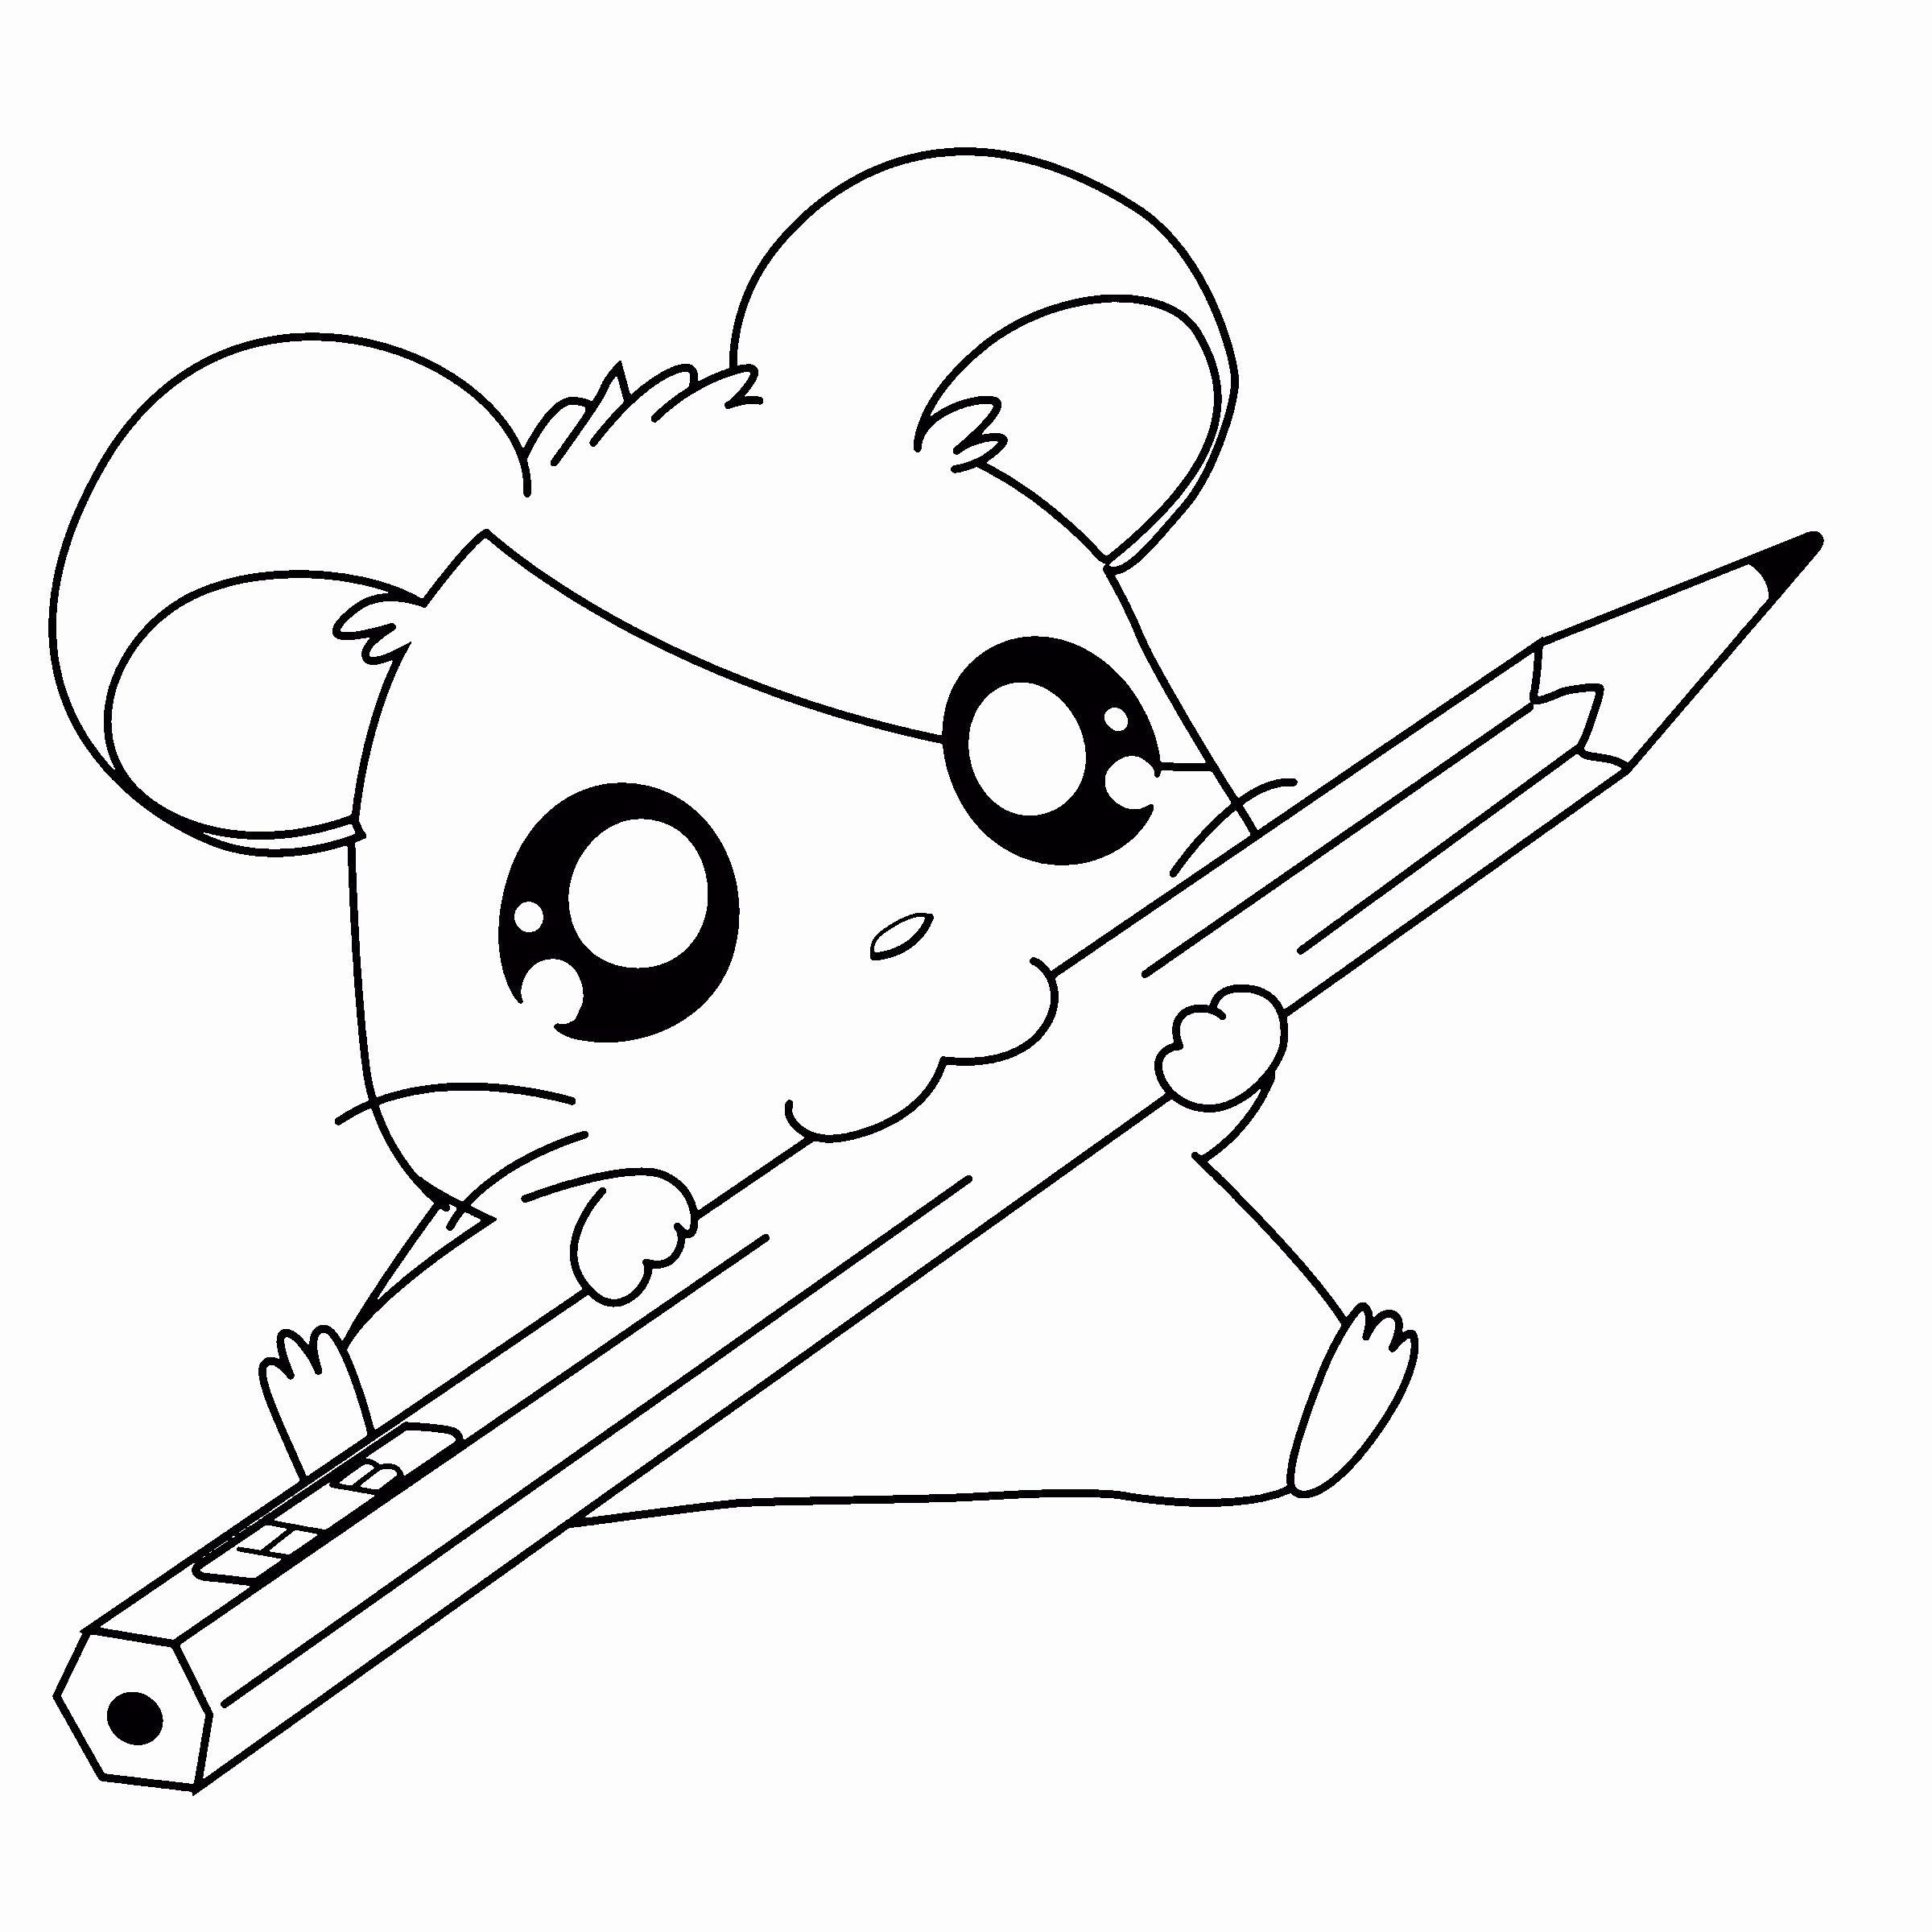 Cute Cartoon Animals Coloring Pages Lovely Cute Kawaii Animal Coloring Pages In 2020 Puppy Coloring Pages Cute Drawings Cute Animal Drawings